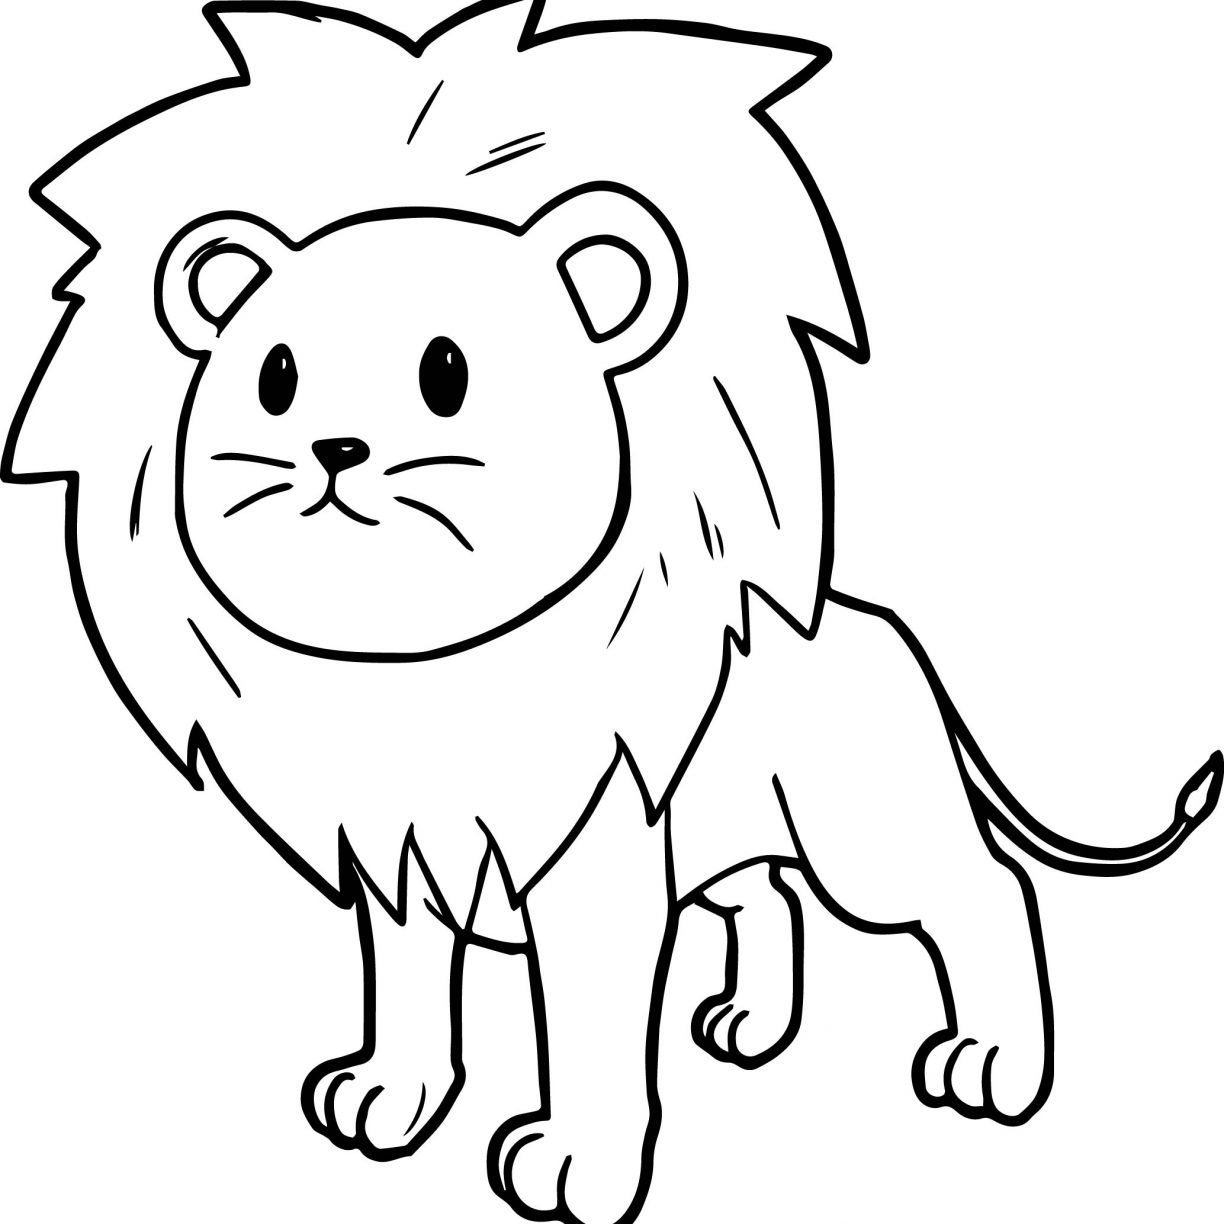 1224x1224 Impressive Lion Coloring Pages Perfect Colorin Free Printable